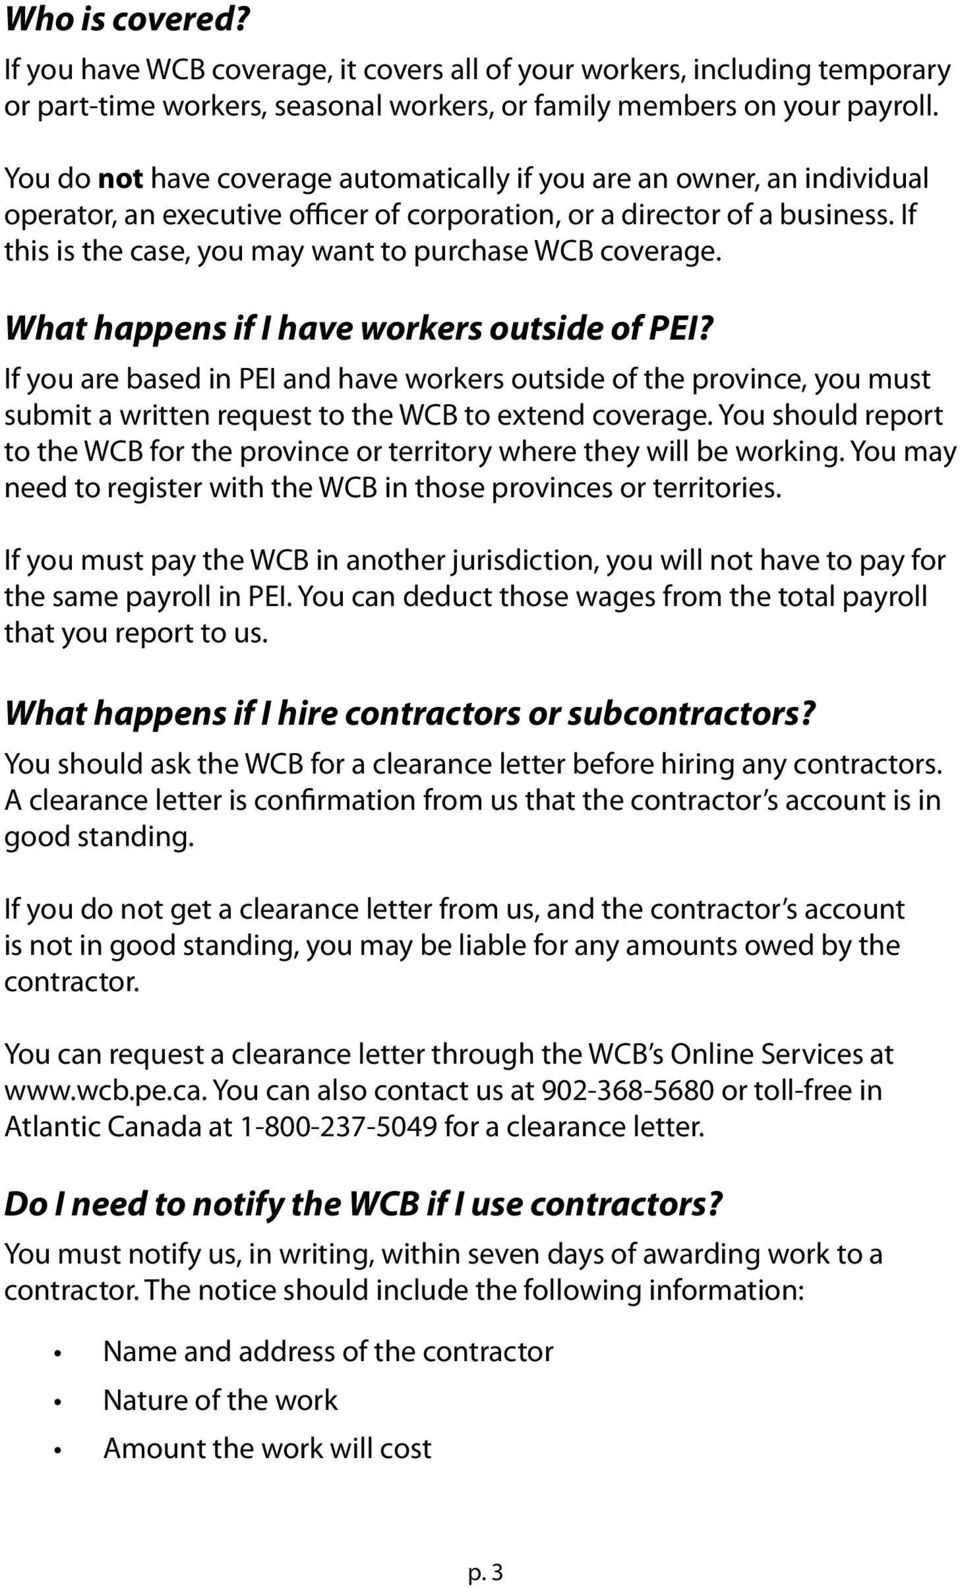 If this is the case, you may want to purchase WCB coverage. What happens if I have workers outside of PEI?